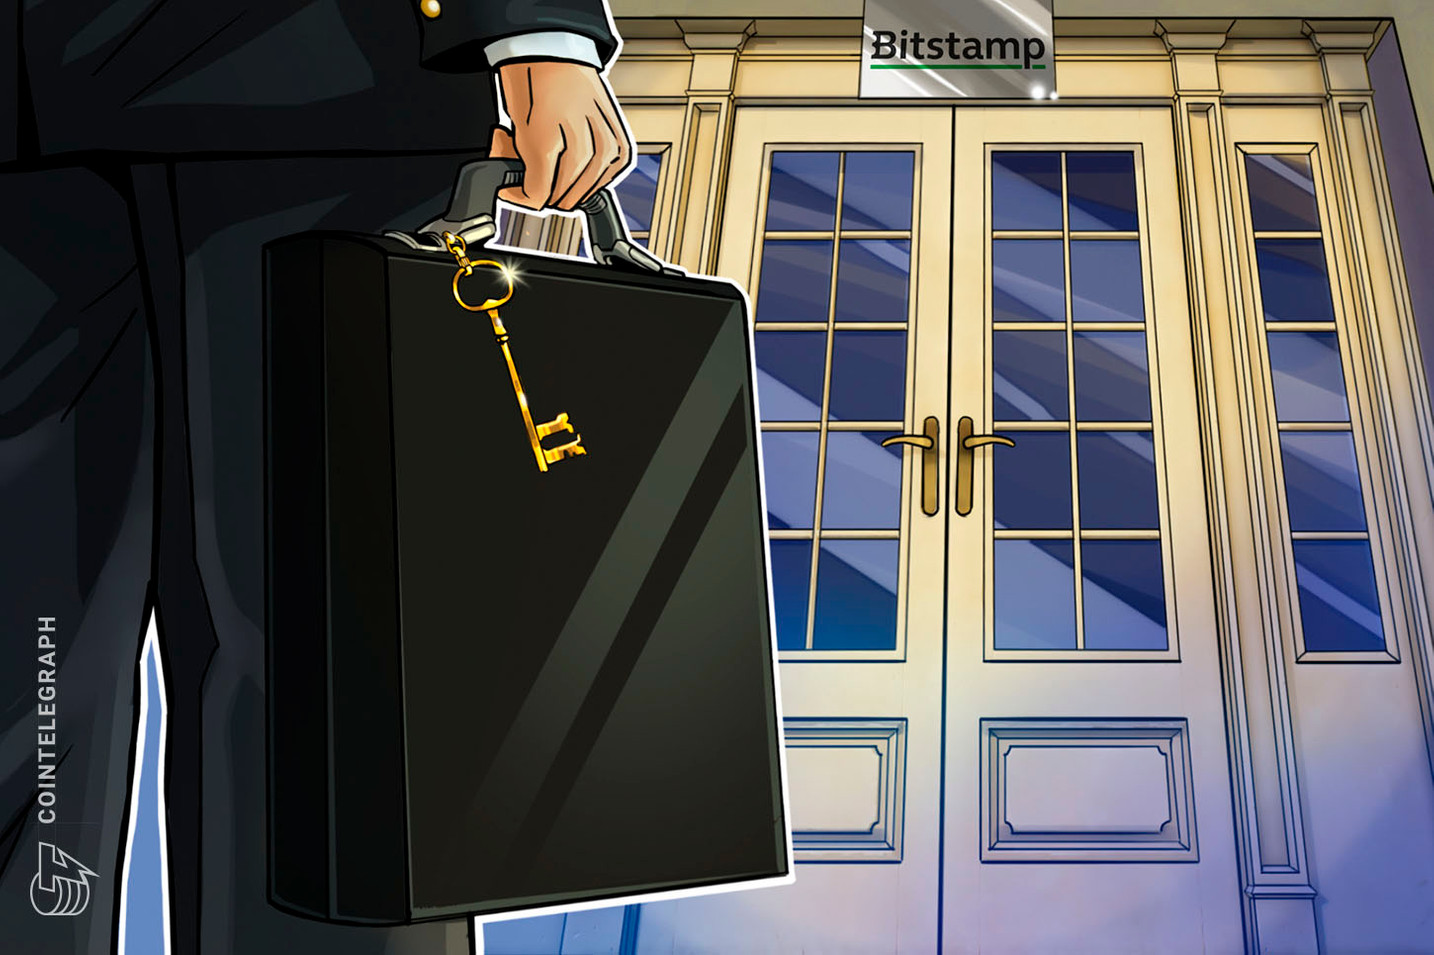 Bitstamp Is Looking Towards 'Global Expansion' After Being Acquired by South Korean Investors